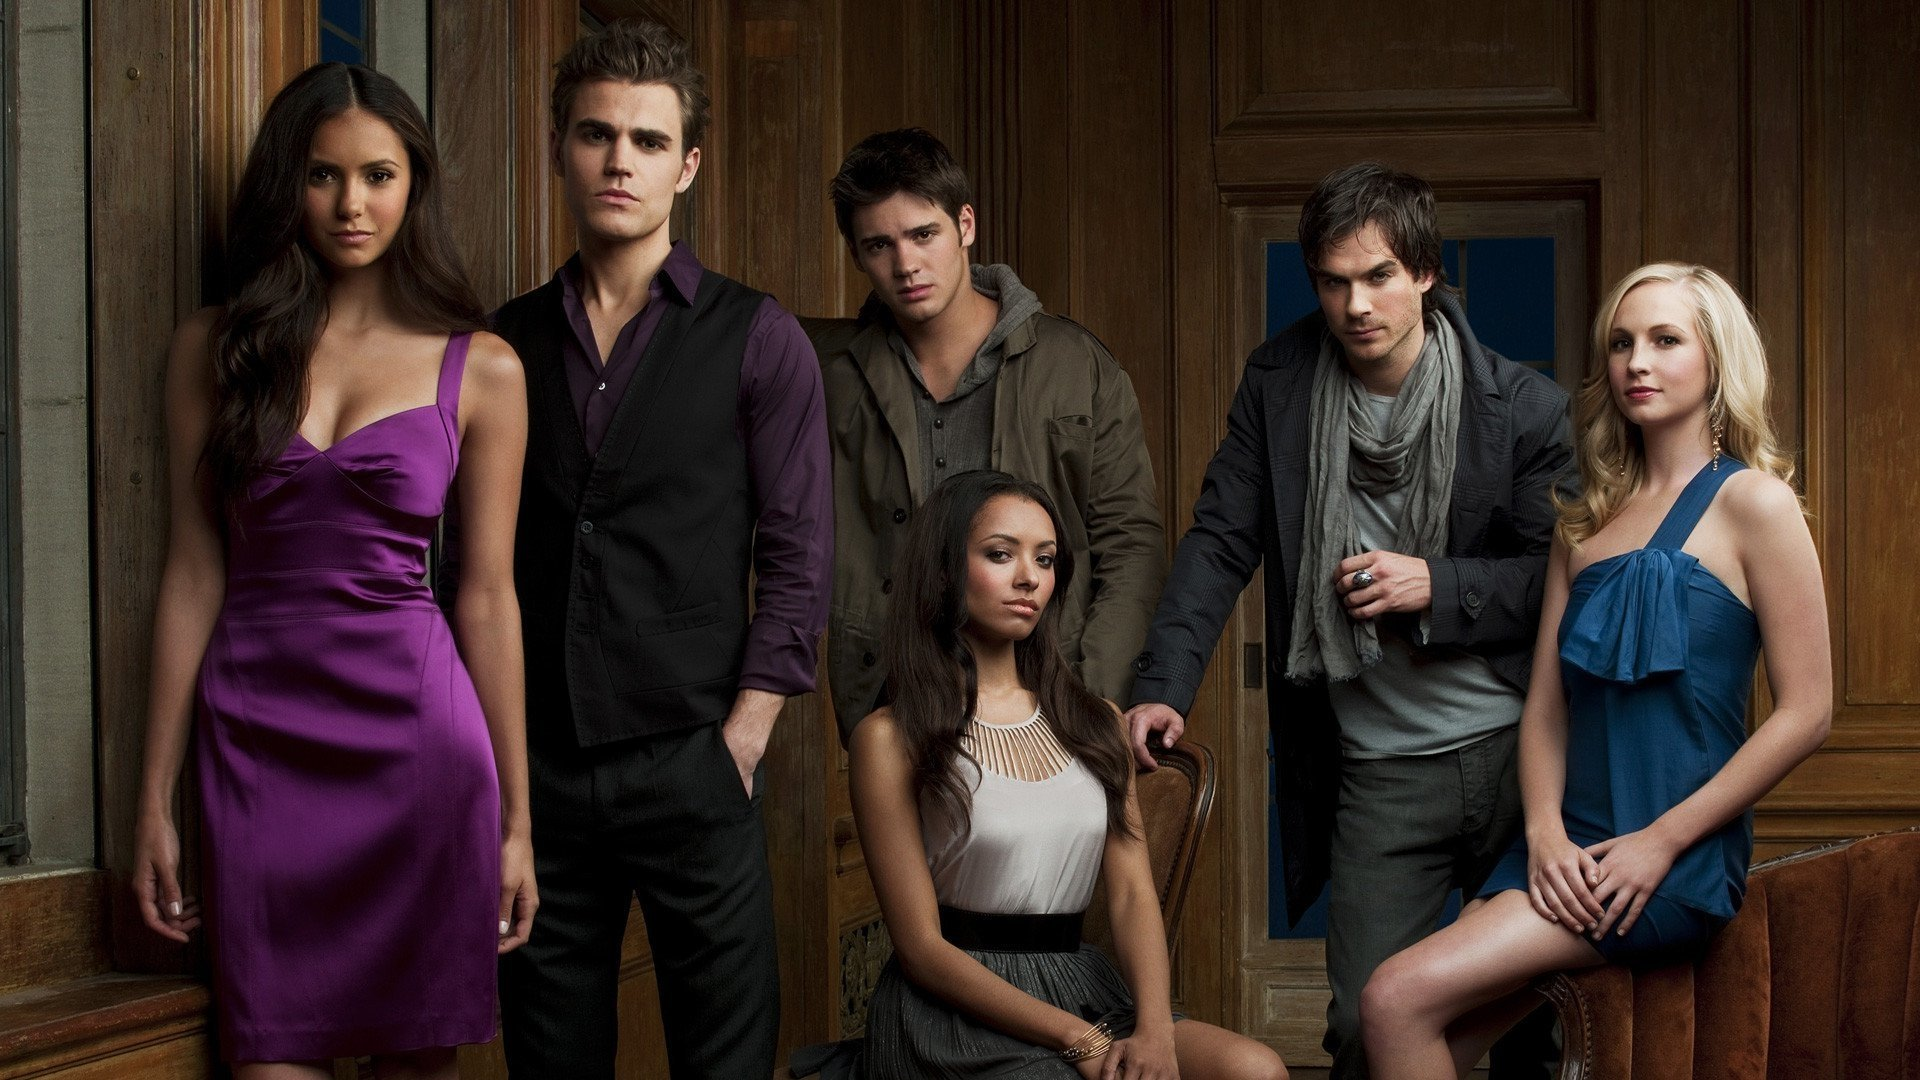 Wallpaper The Vampire Diaries: The Vampire Diaries HD Wallpaper